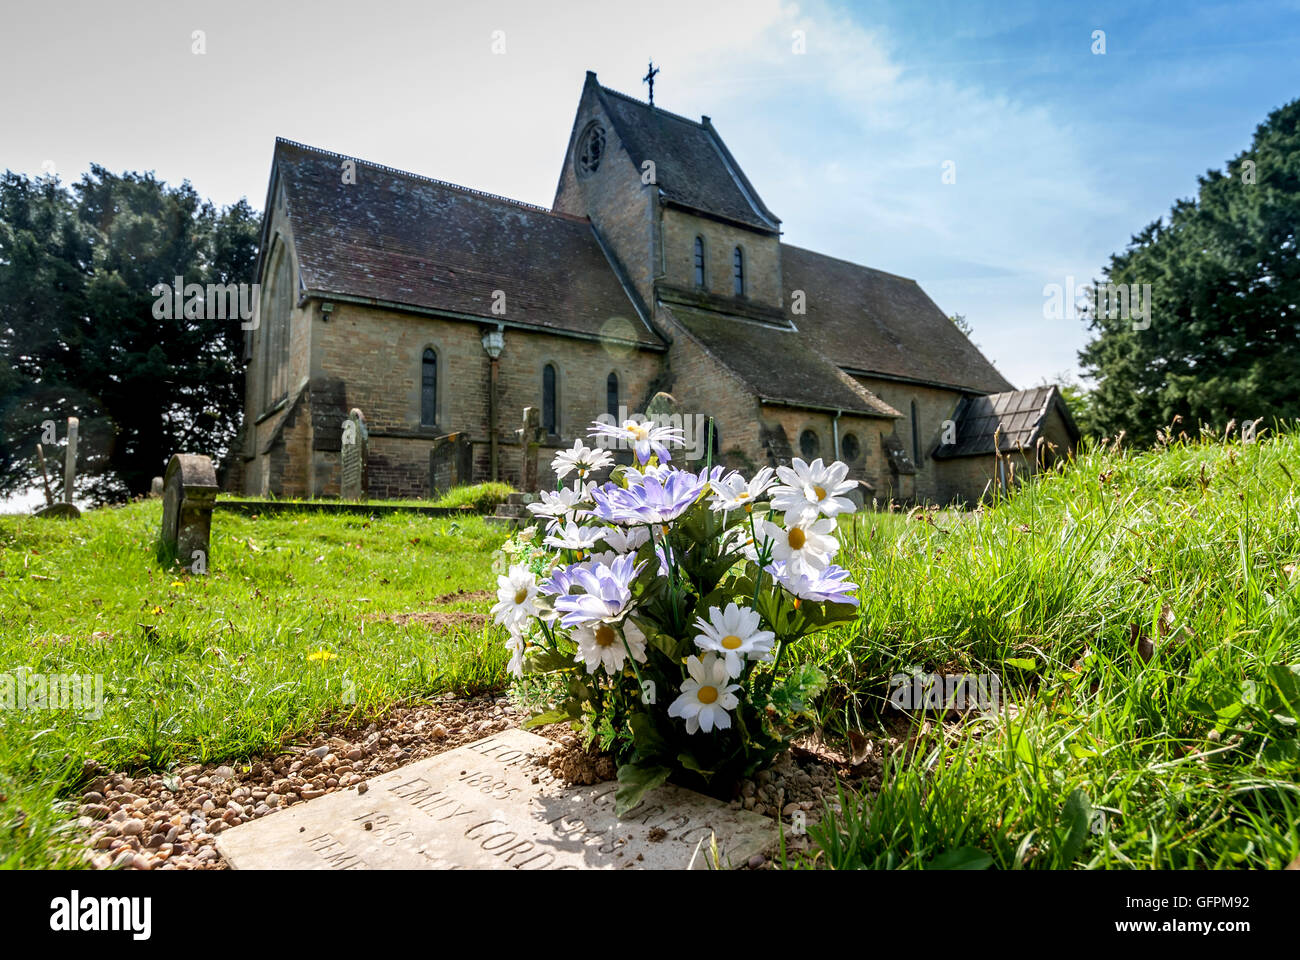 St Mary's Church in Chailey, with its unique saddle-back roof, now converted to private housing. - Stock Image